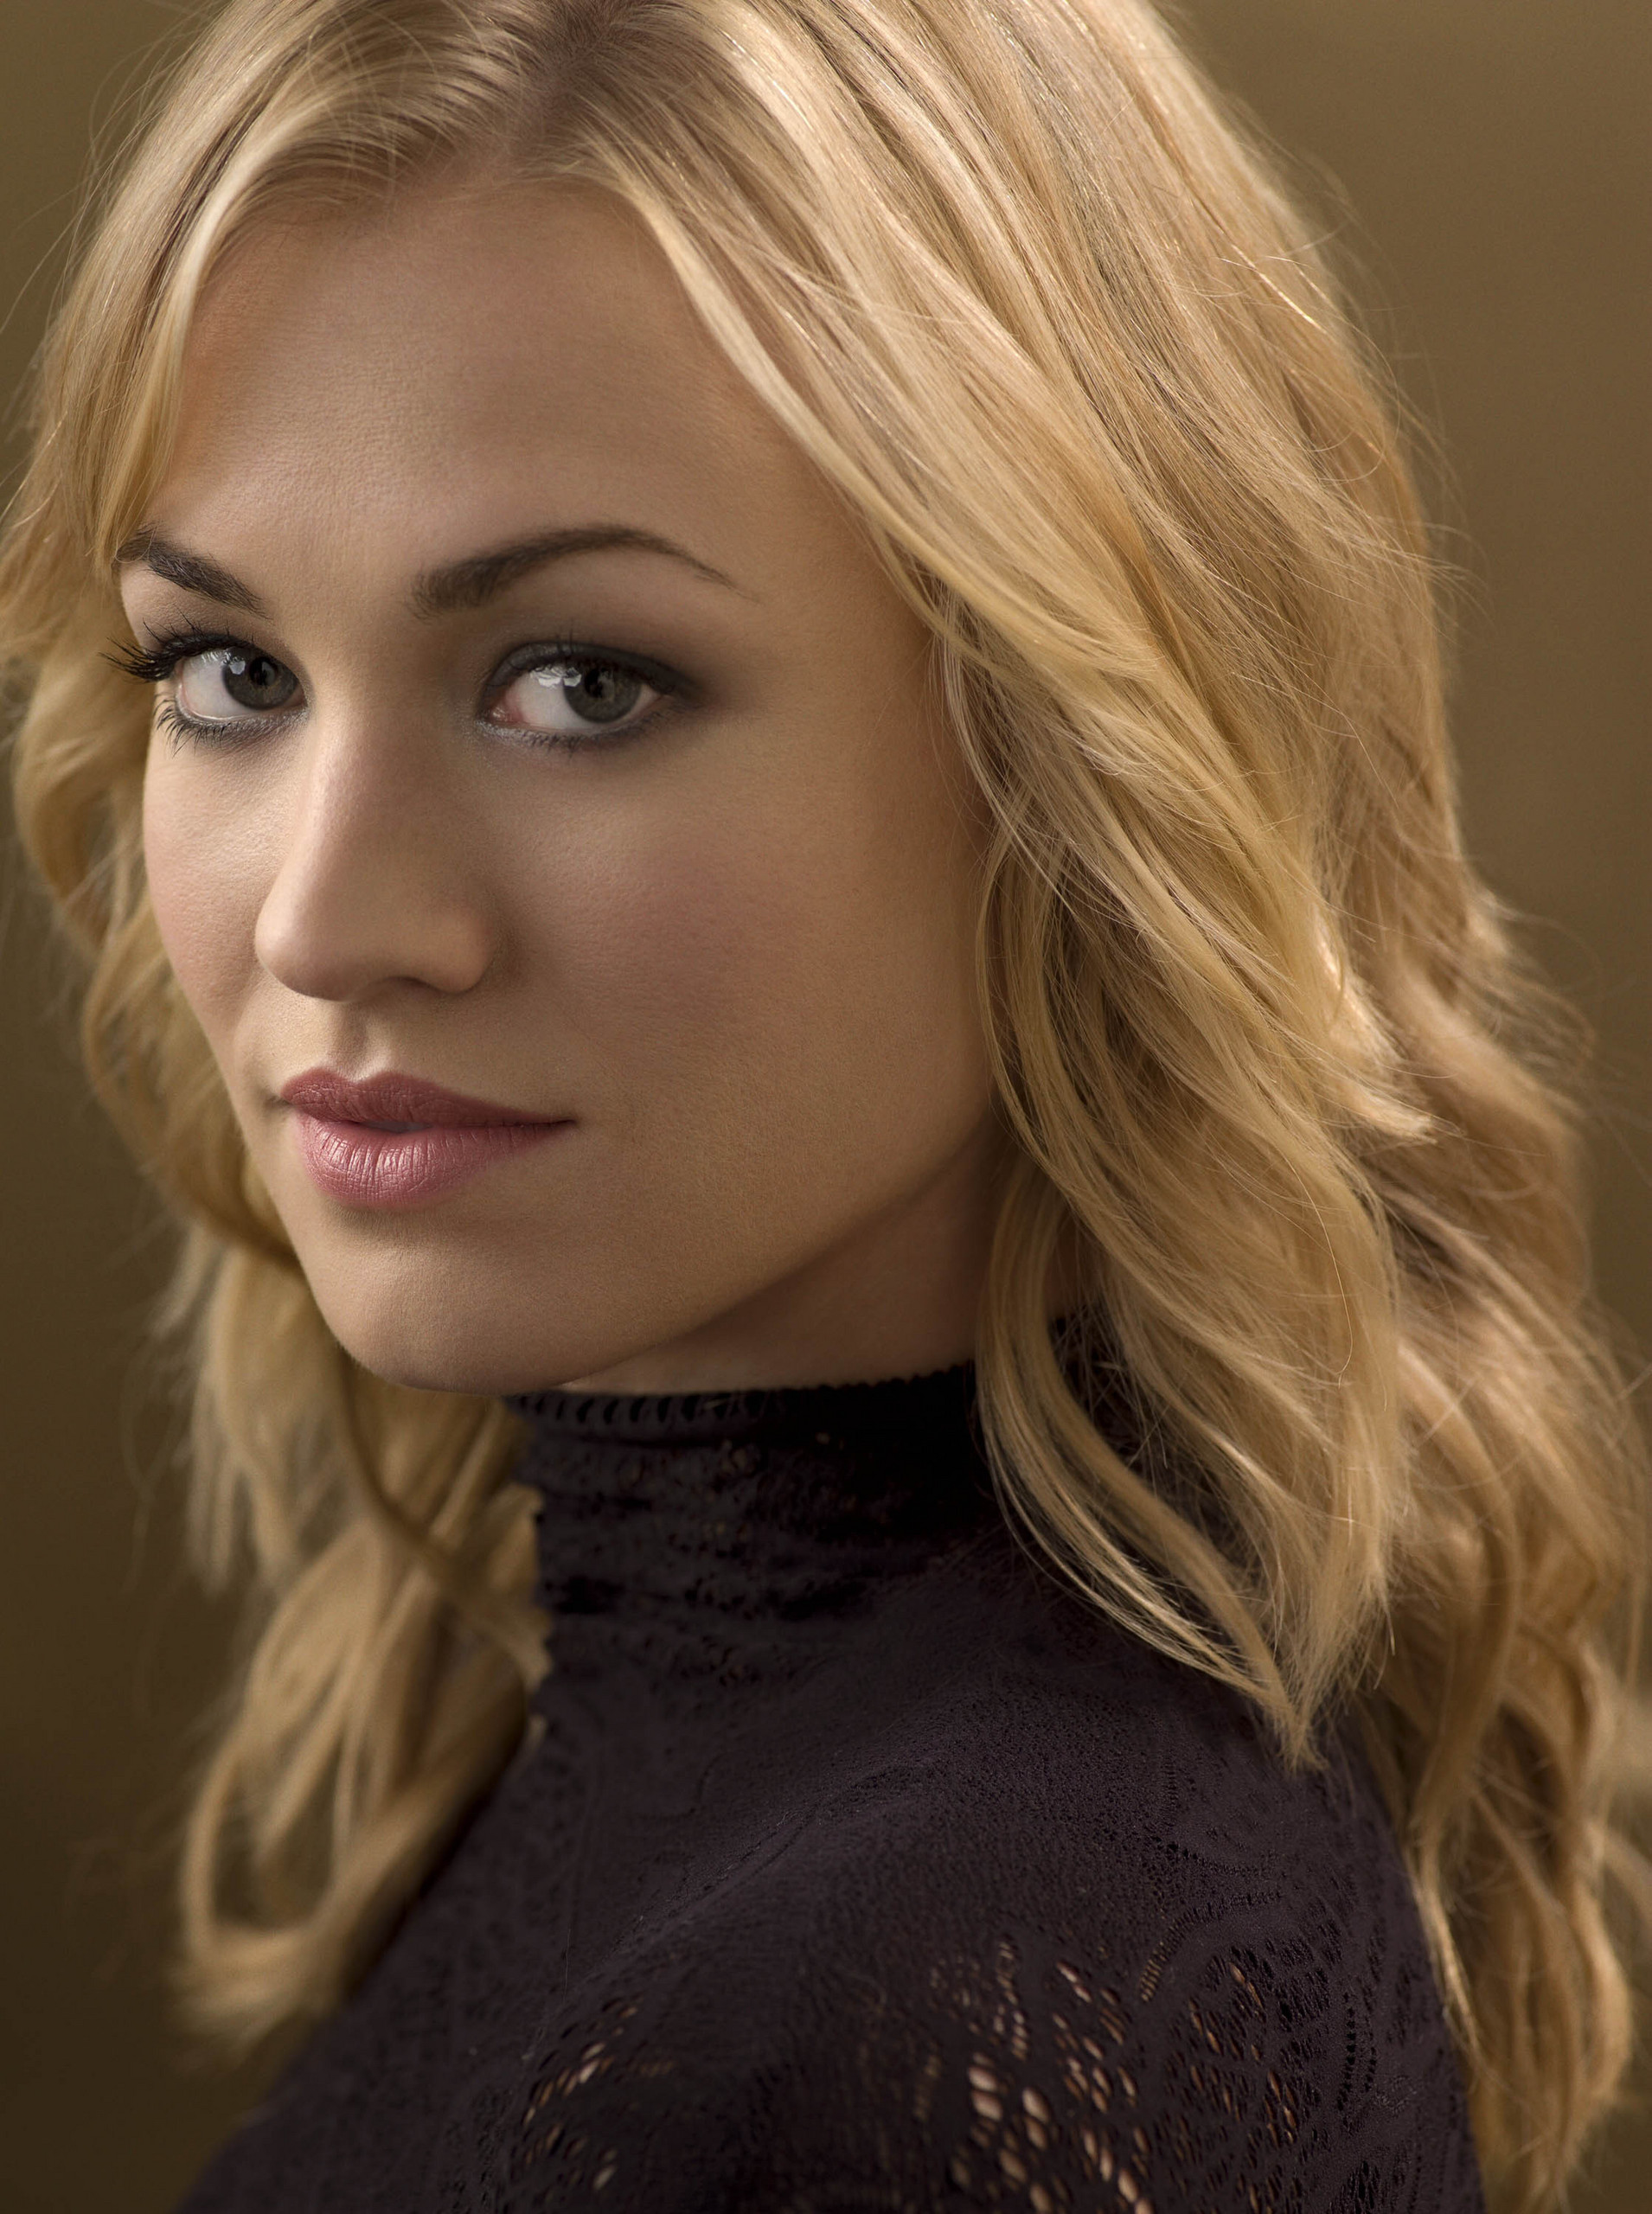 Yvonne Strahovski images yvonne HD wallpaper and background photos 1910x2560